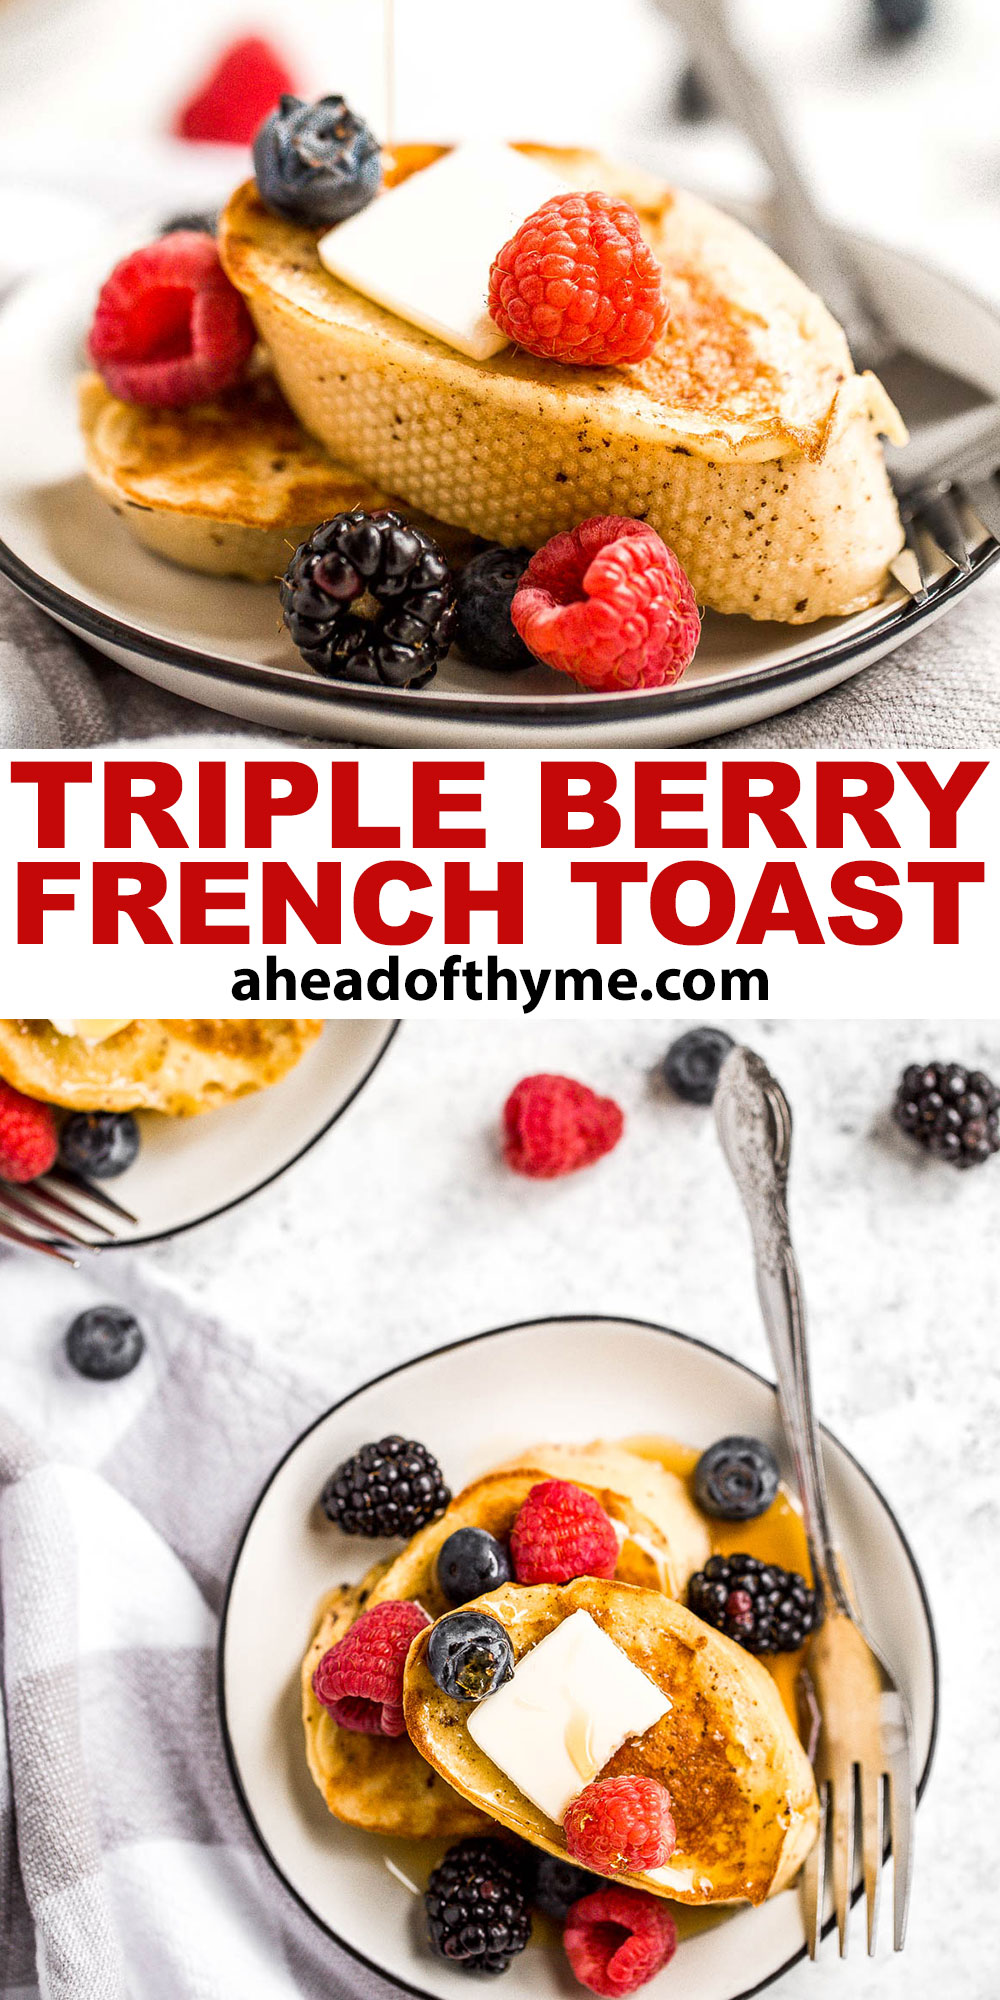 Triple Berry French Toast